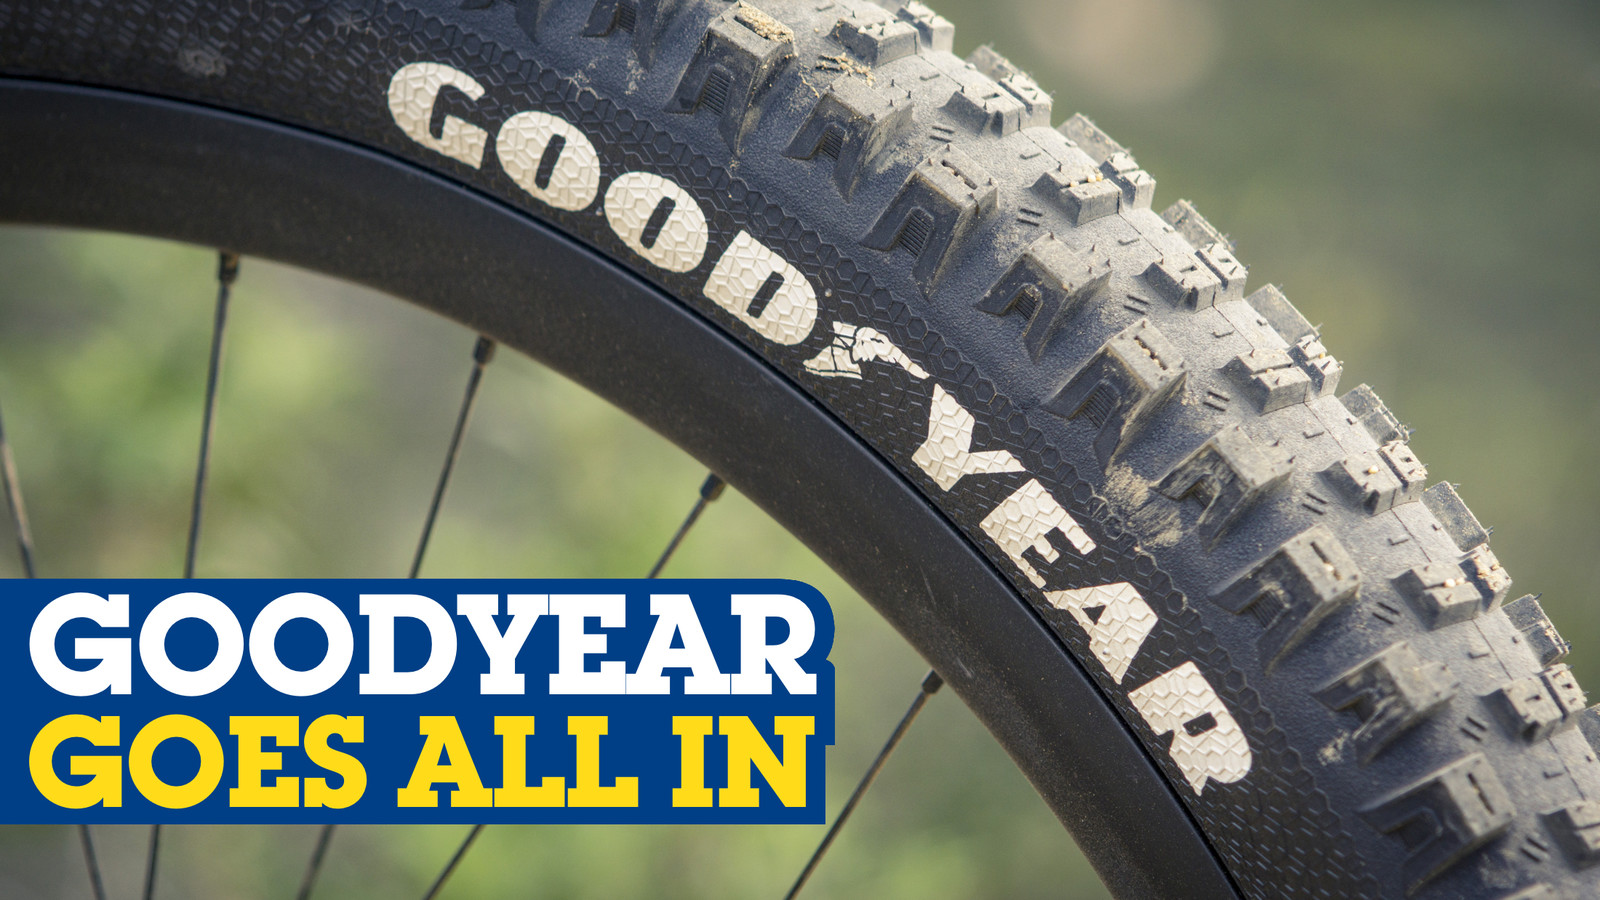 Goodyear Tires Goes All In and Launches Complete Mountain Bike Line